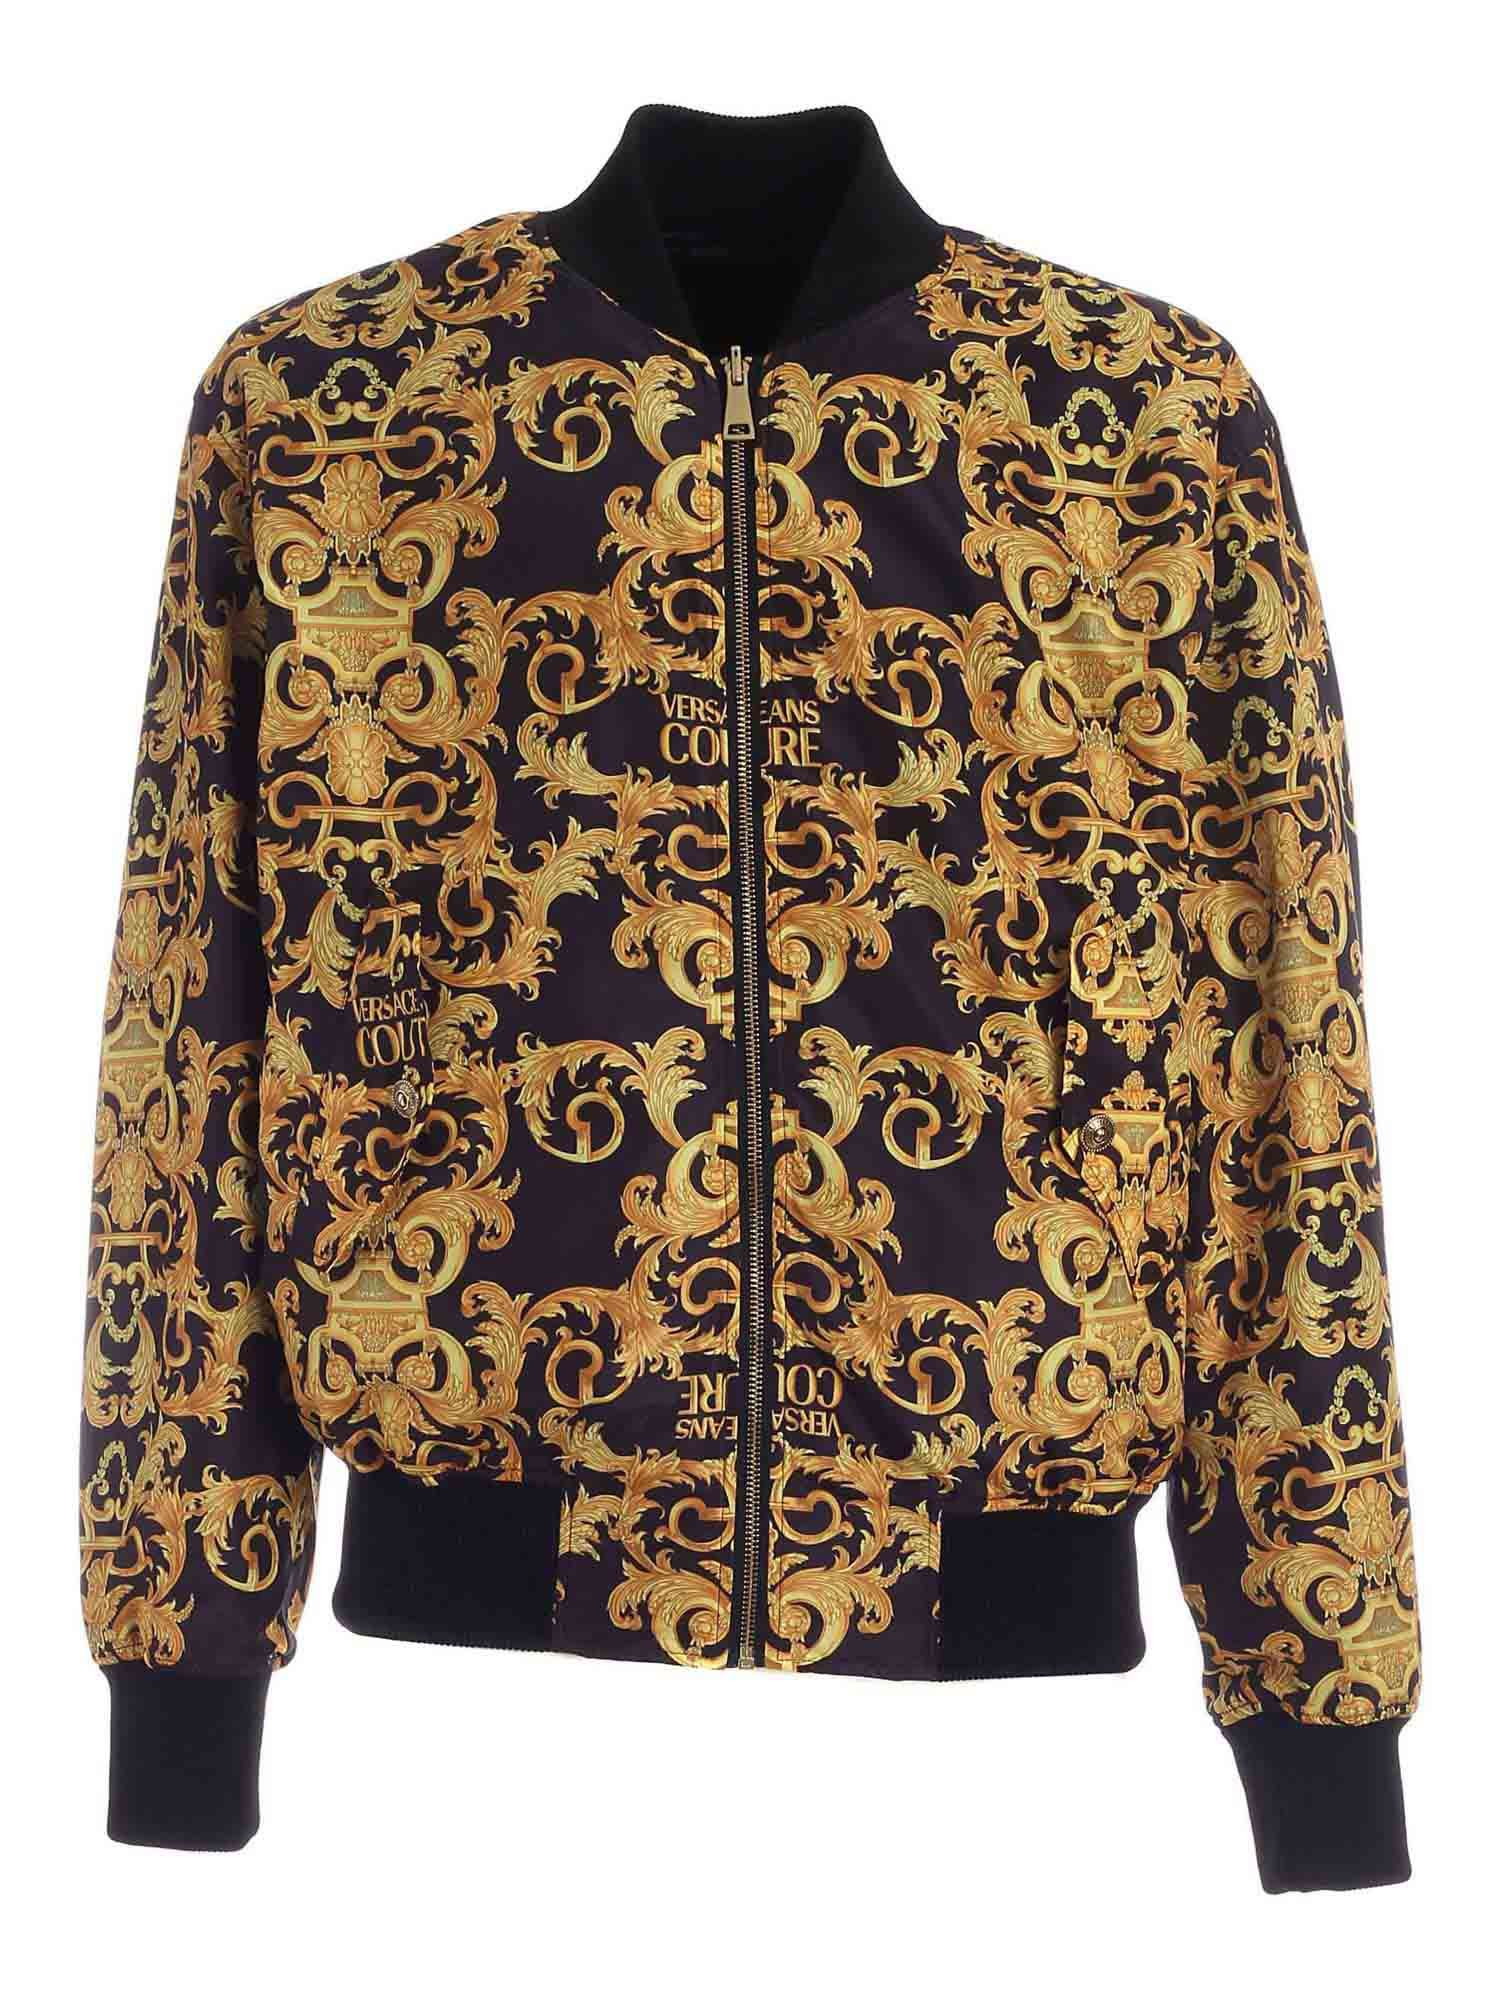 VERSACE JEANS COUTURE LOGO BAROQUE PRINT BOMBER JACKET IN BLACK